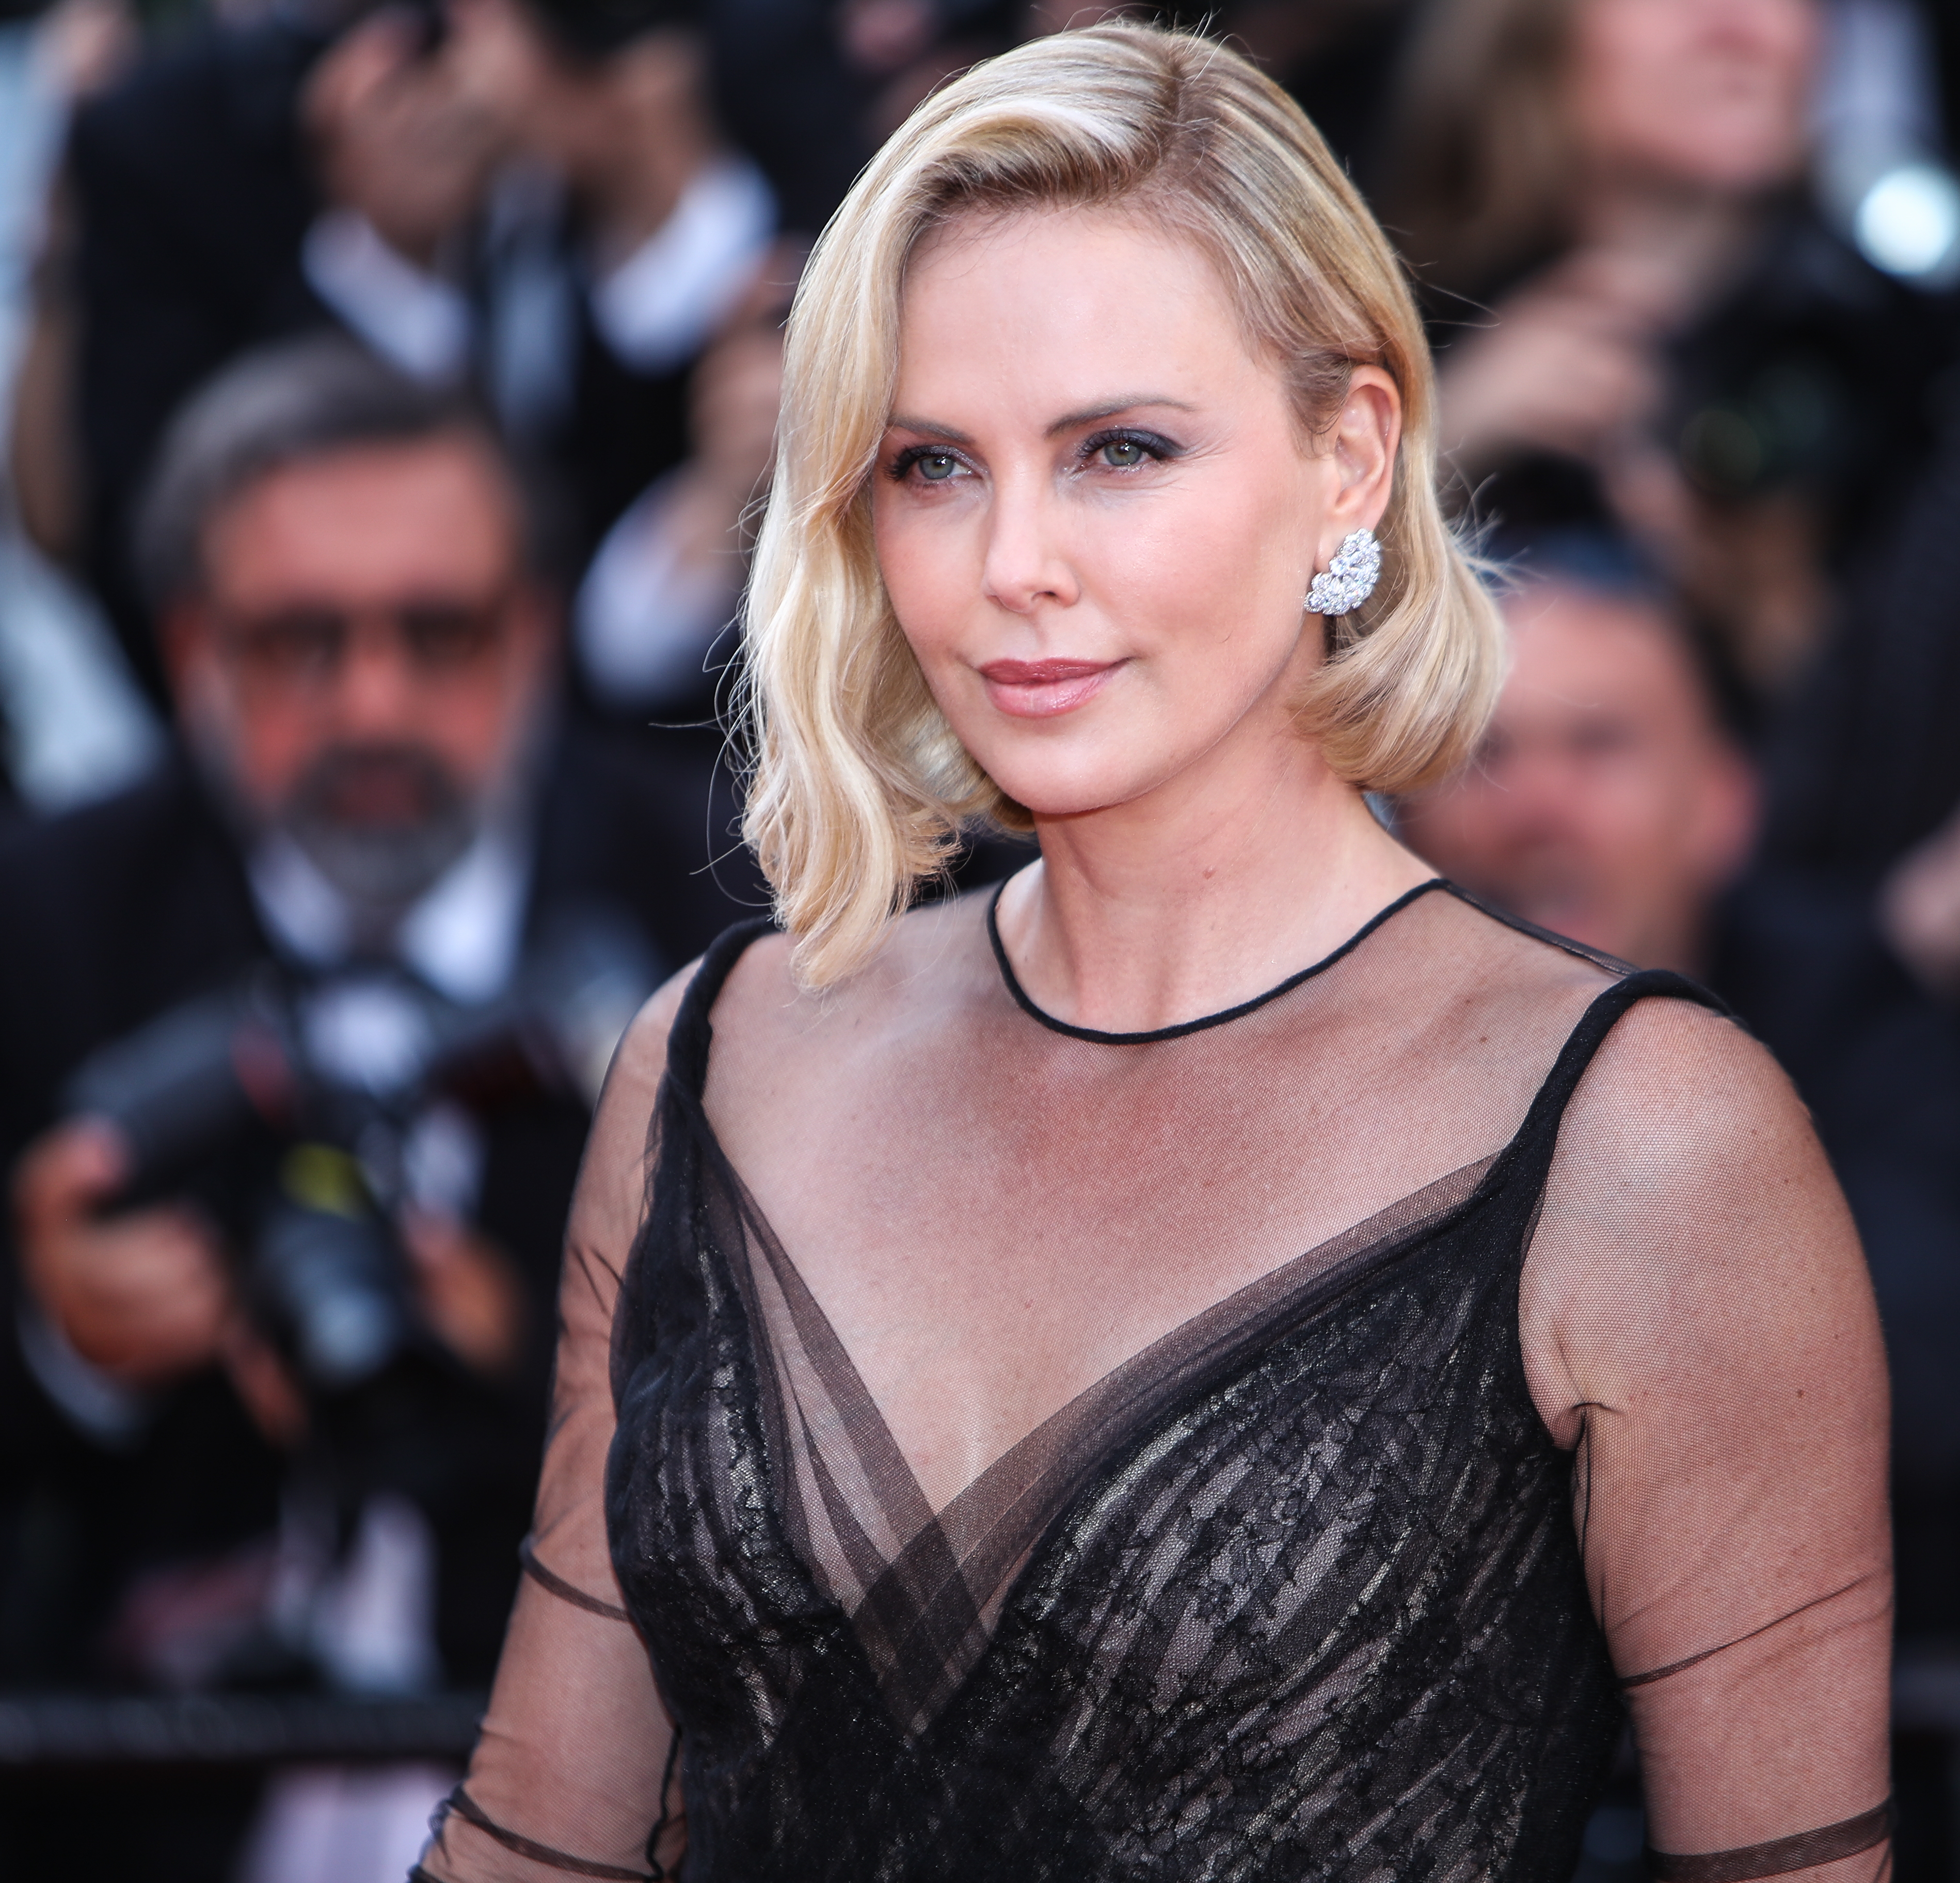 70th Annual Cannes Film Festival - 70th Anniversary Gala                                    Featuring: Charlize Theron                  Where: Cannes, United Kingdom                  When: 23 May 2017                  Credit: John Rainford/WENN.com